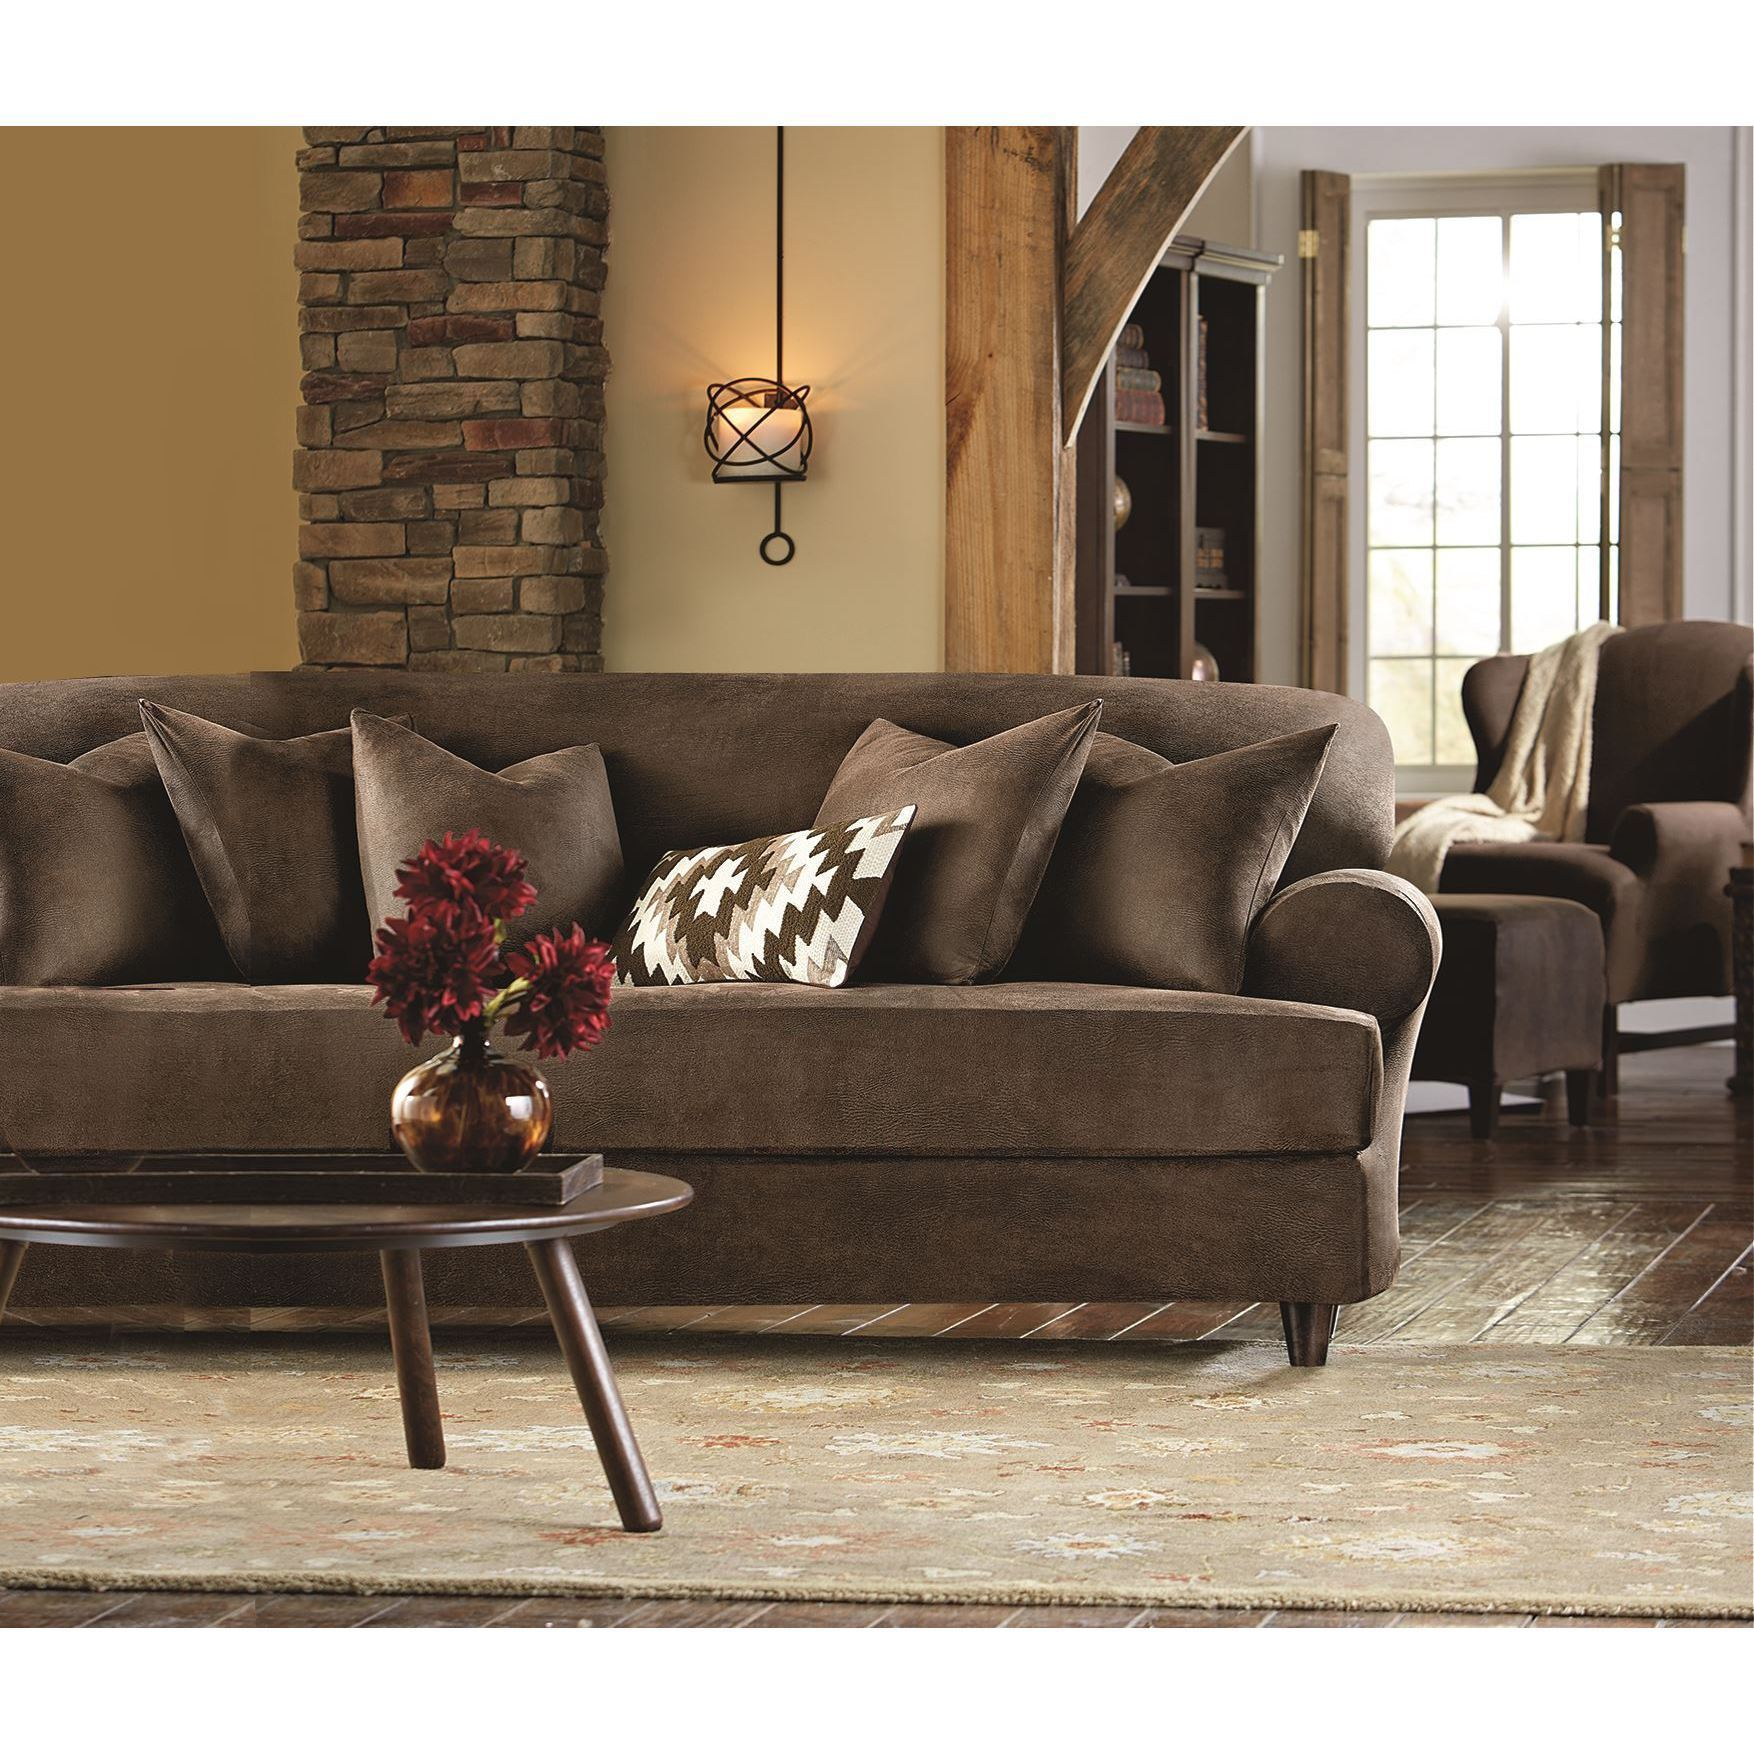 Shop Sure Fit Stretch Faux Leather 2 Piece T Cushion Sofa Slipcover